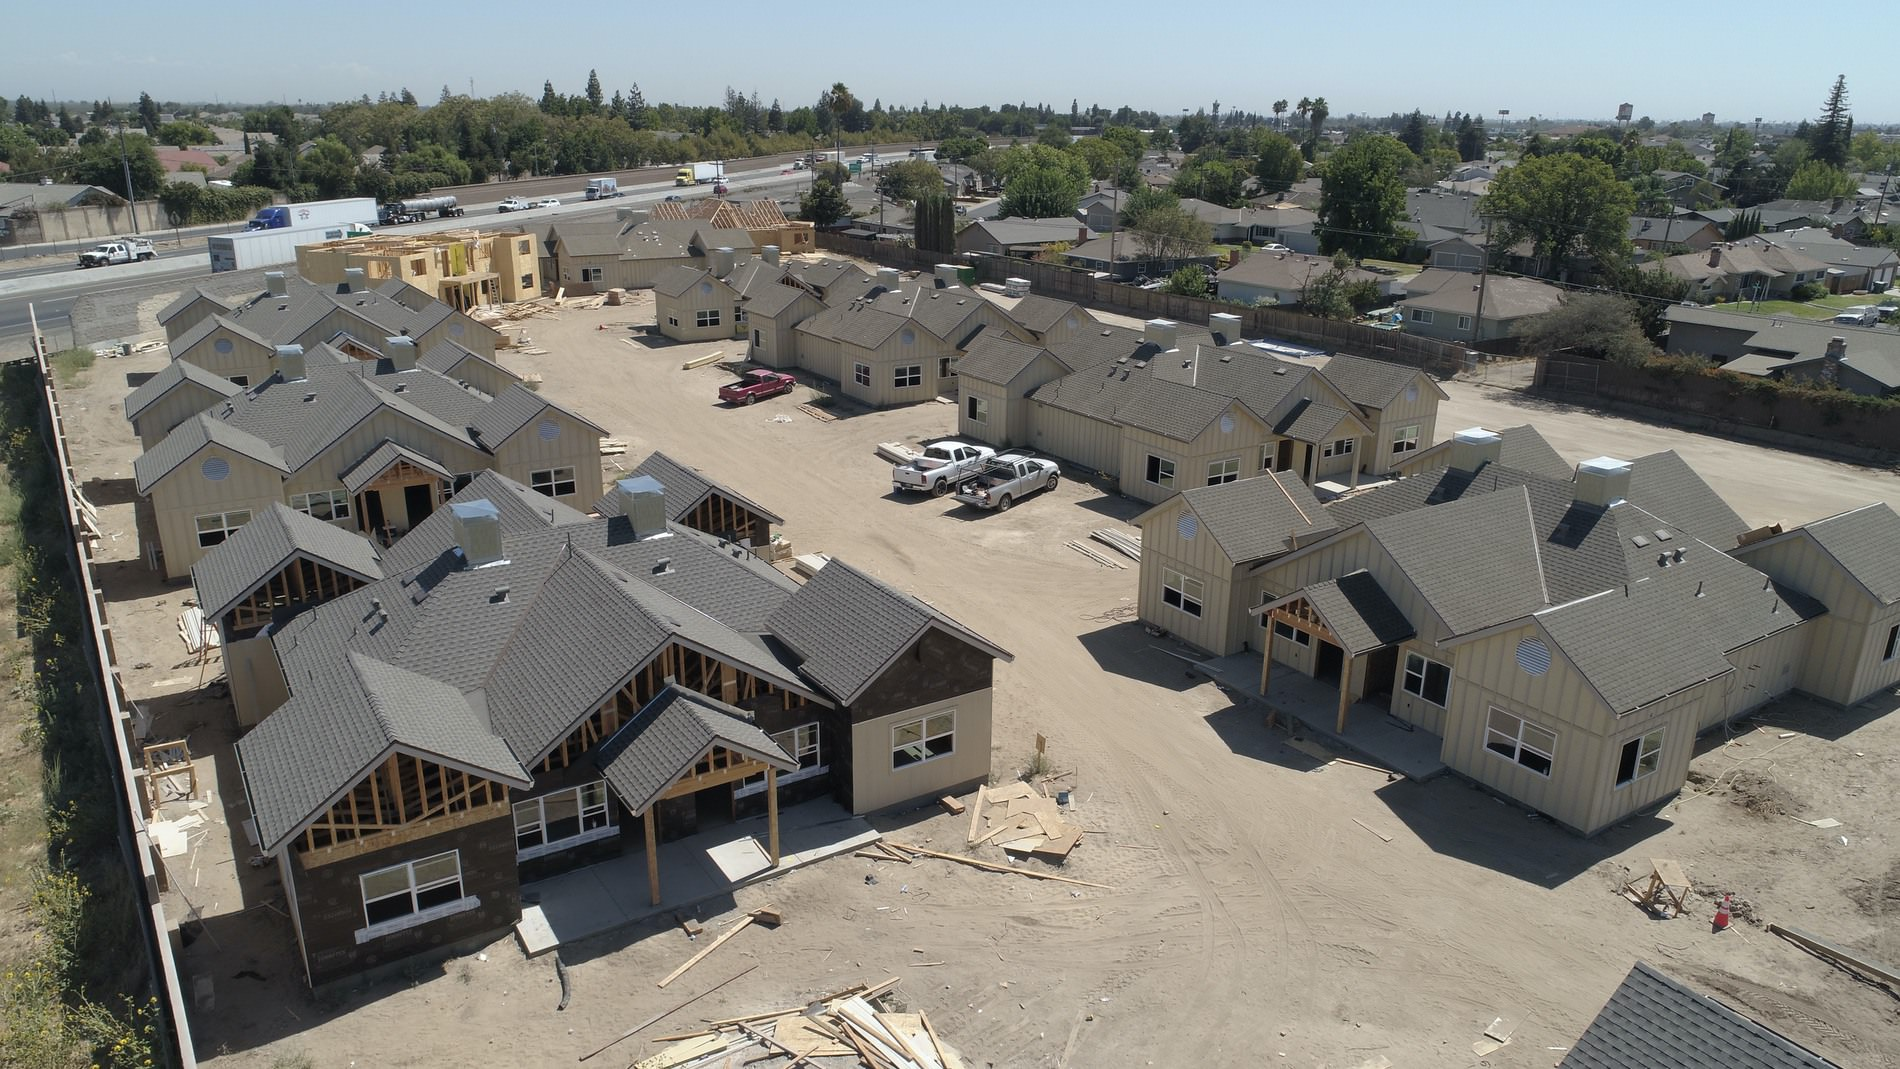 Cottage View Apartments in Manteca. Housing Authority County of San Joaquin.